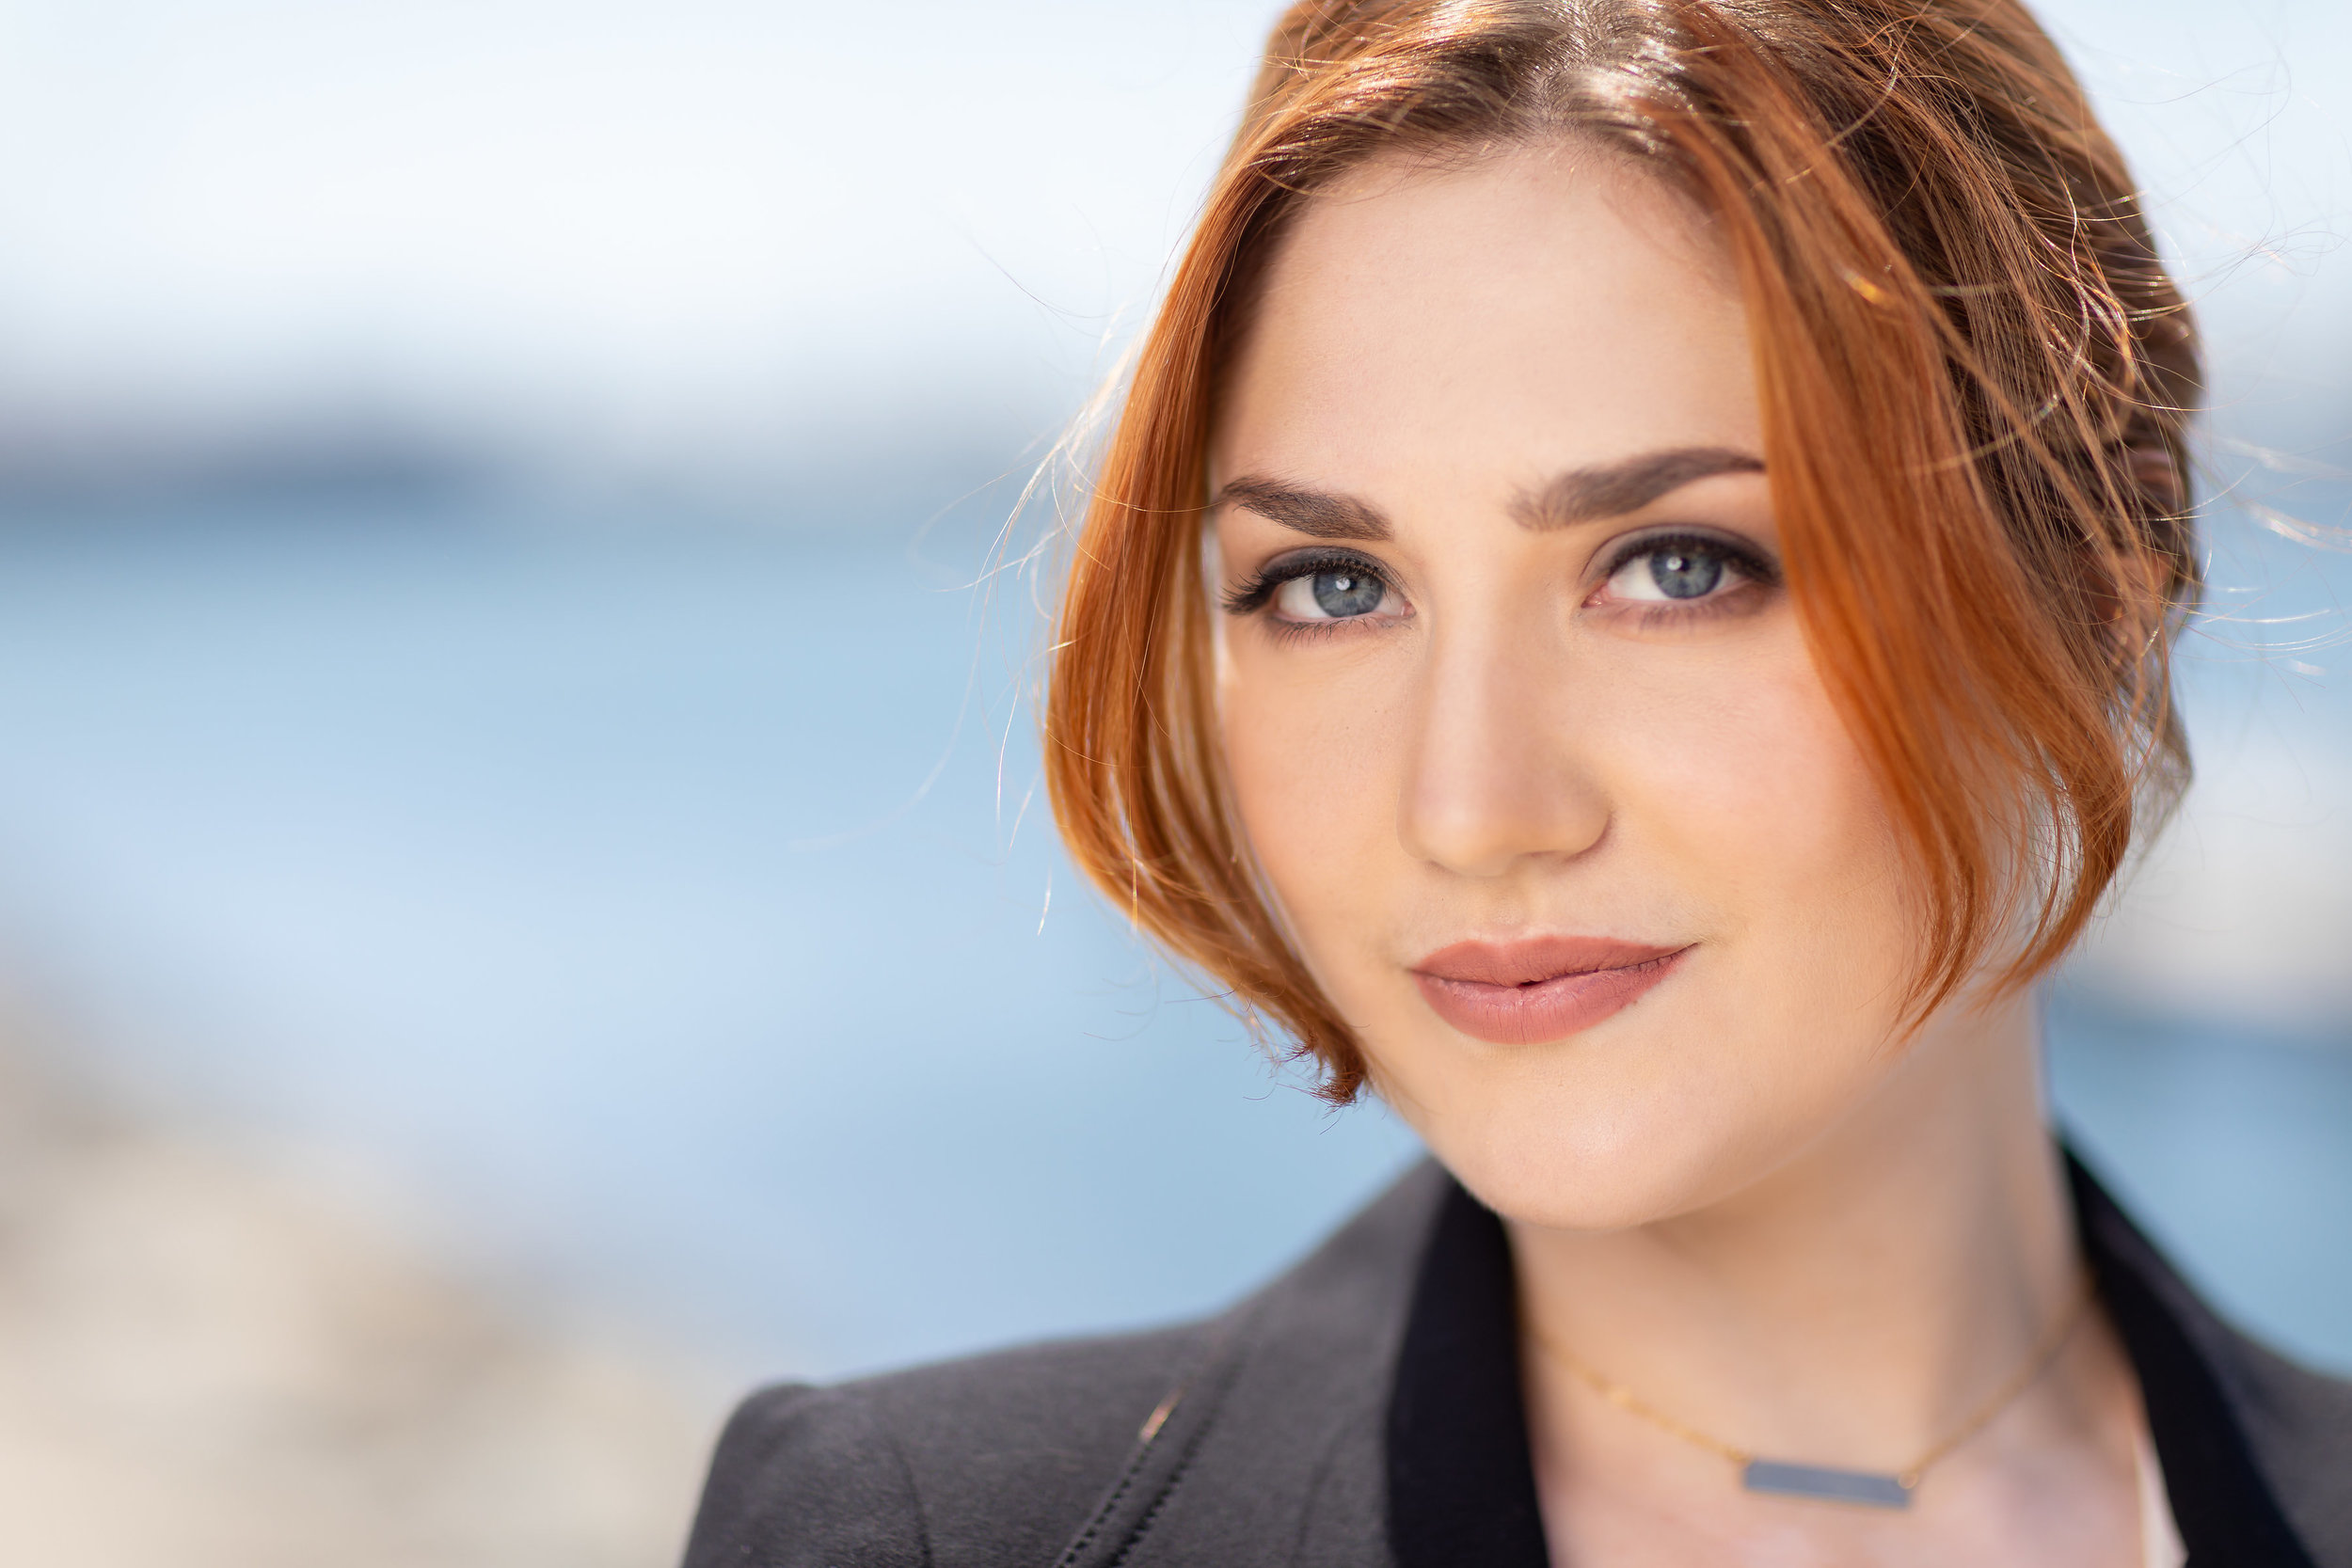 Red head with updo professional headshot portrait.jpg